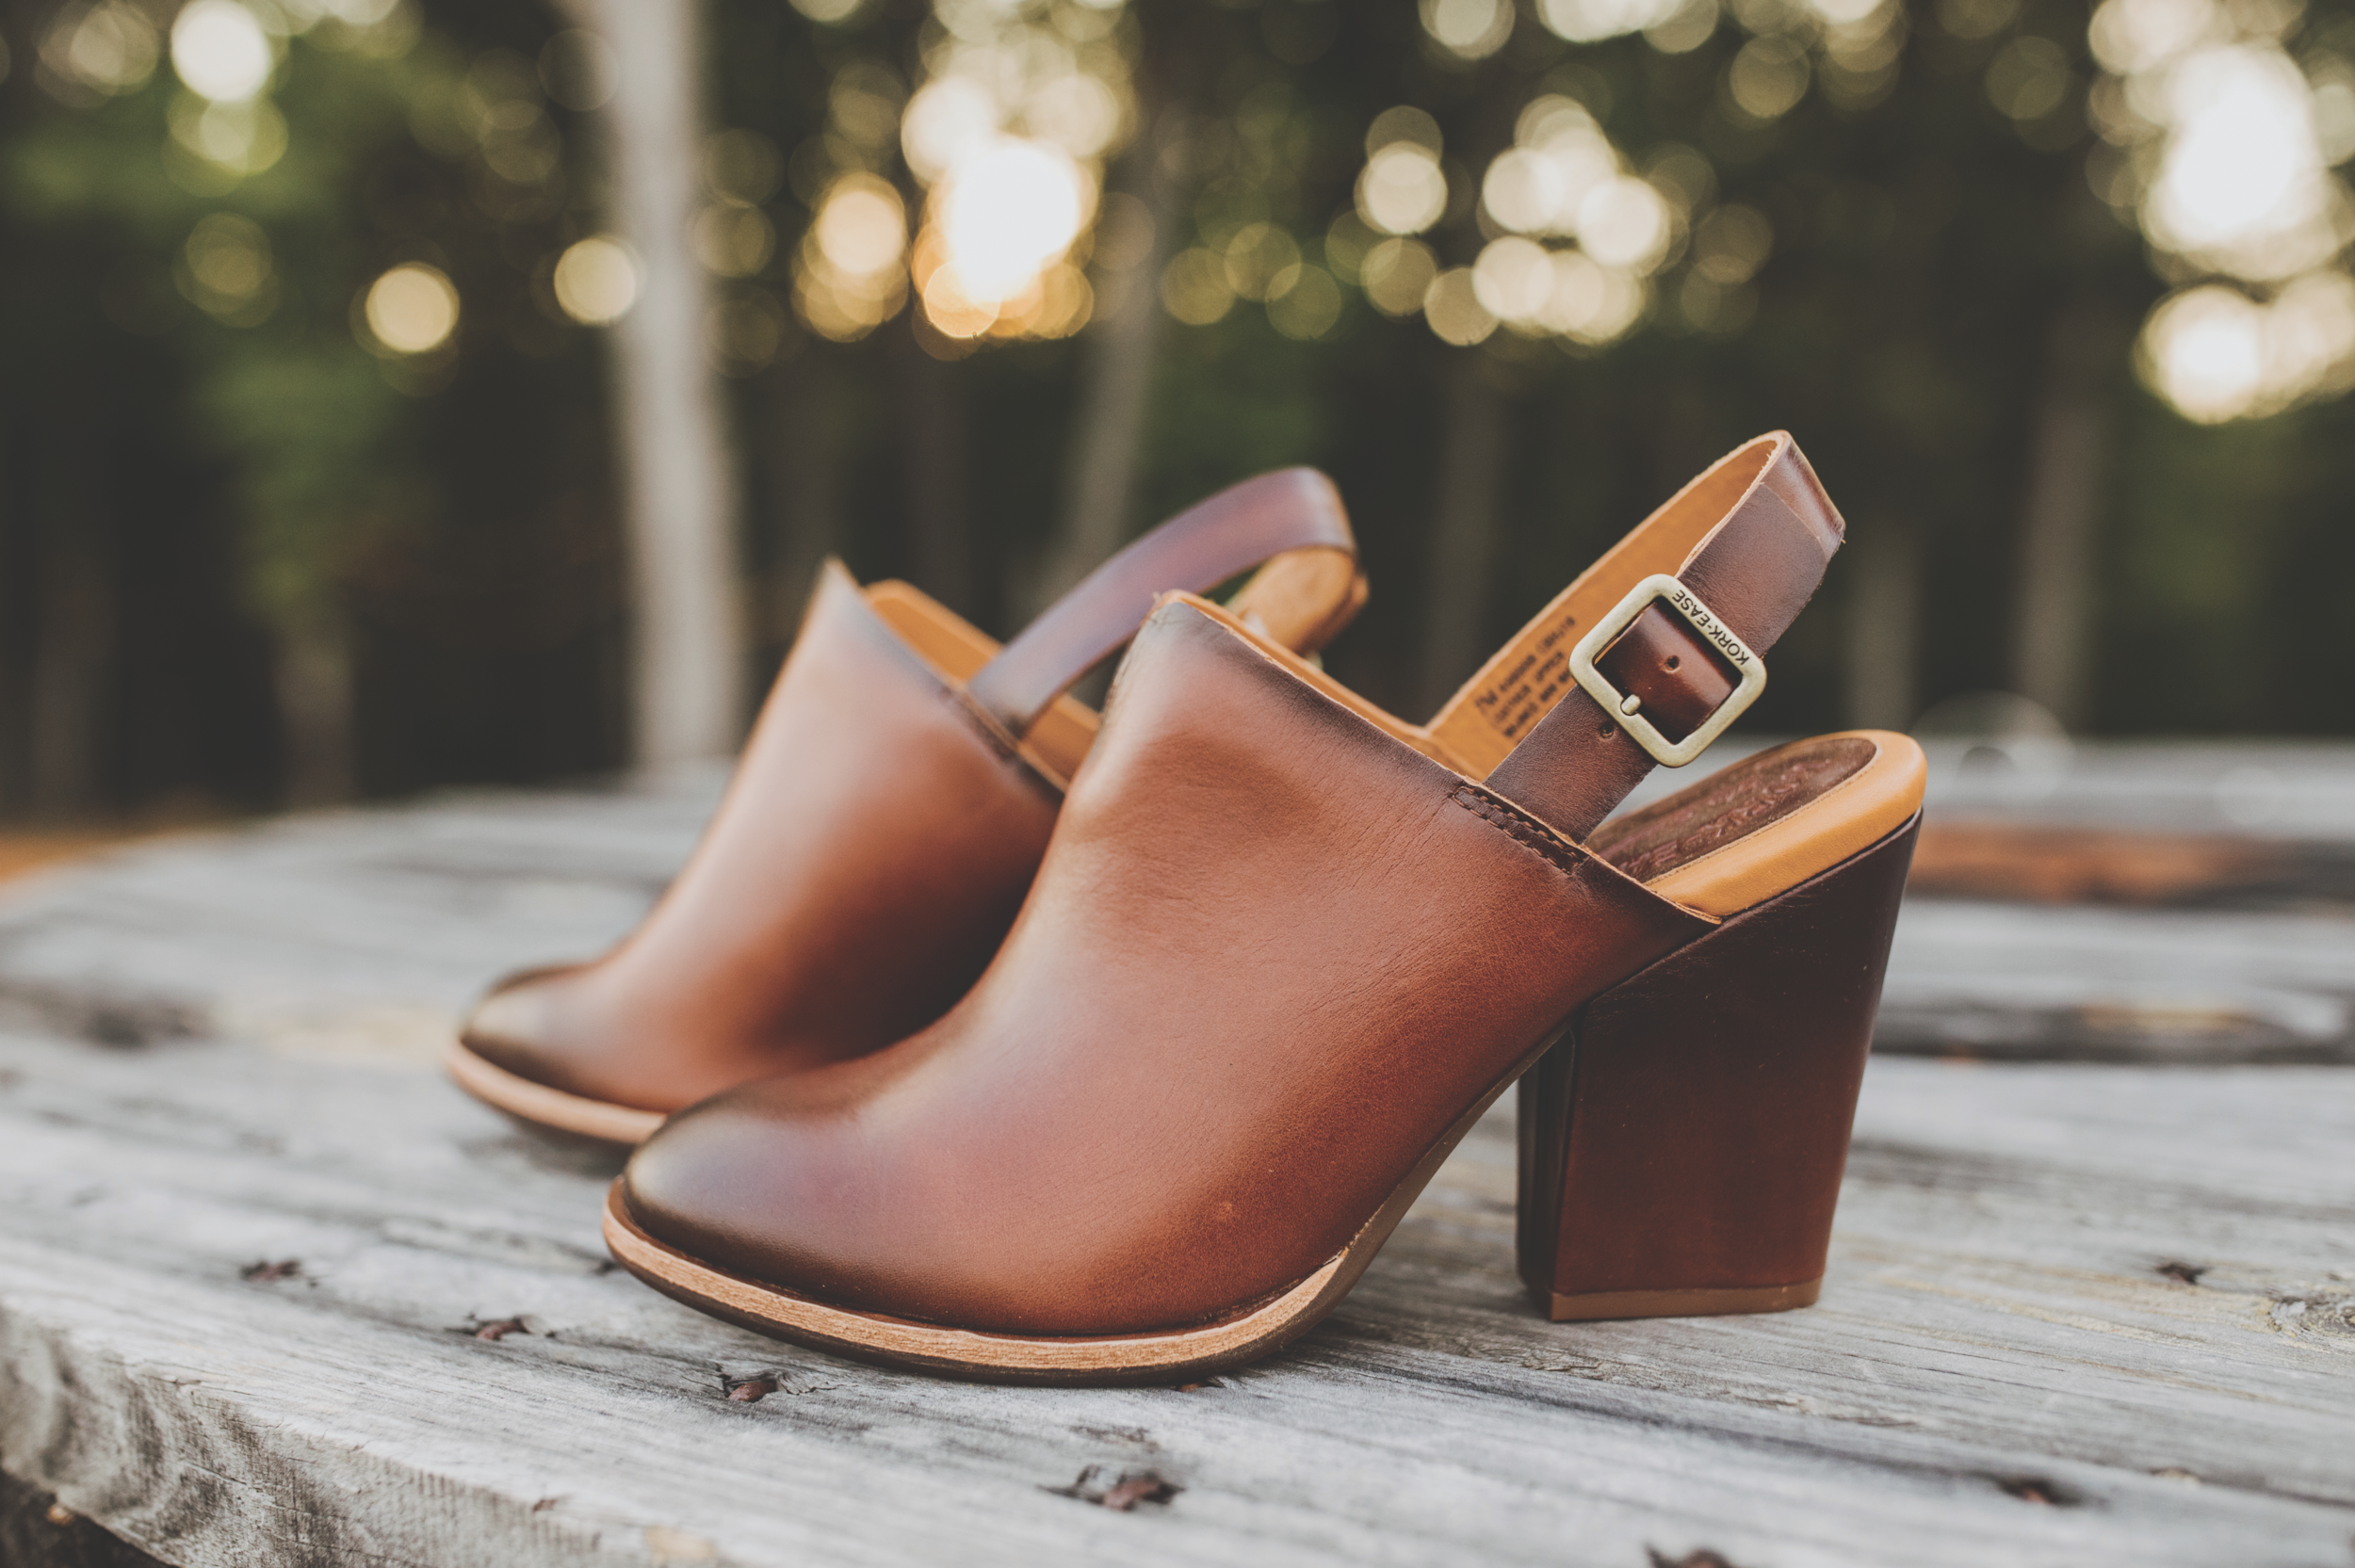 Lucy's    1215 Main St, Newberry  shoes by Kork-Ease